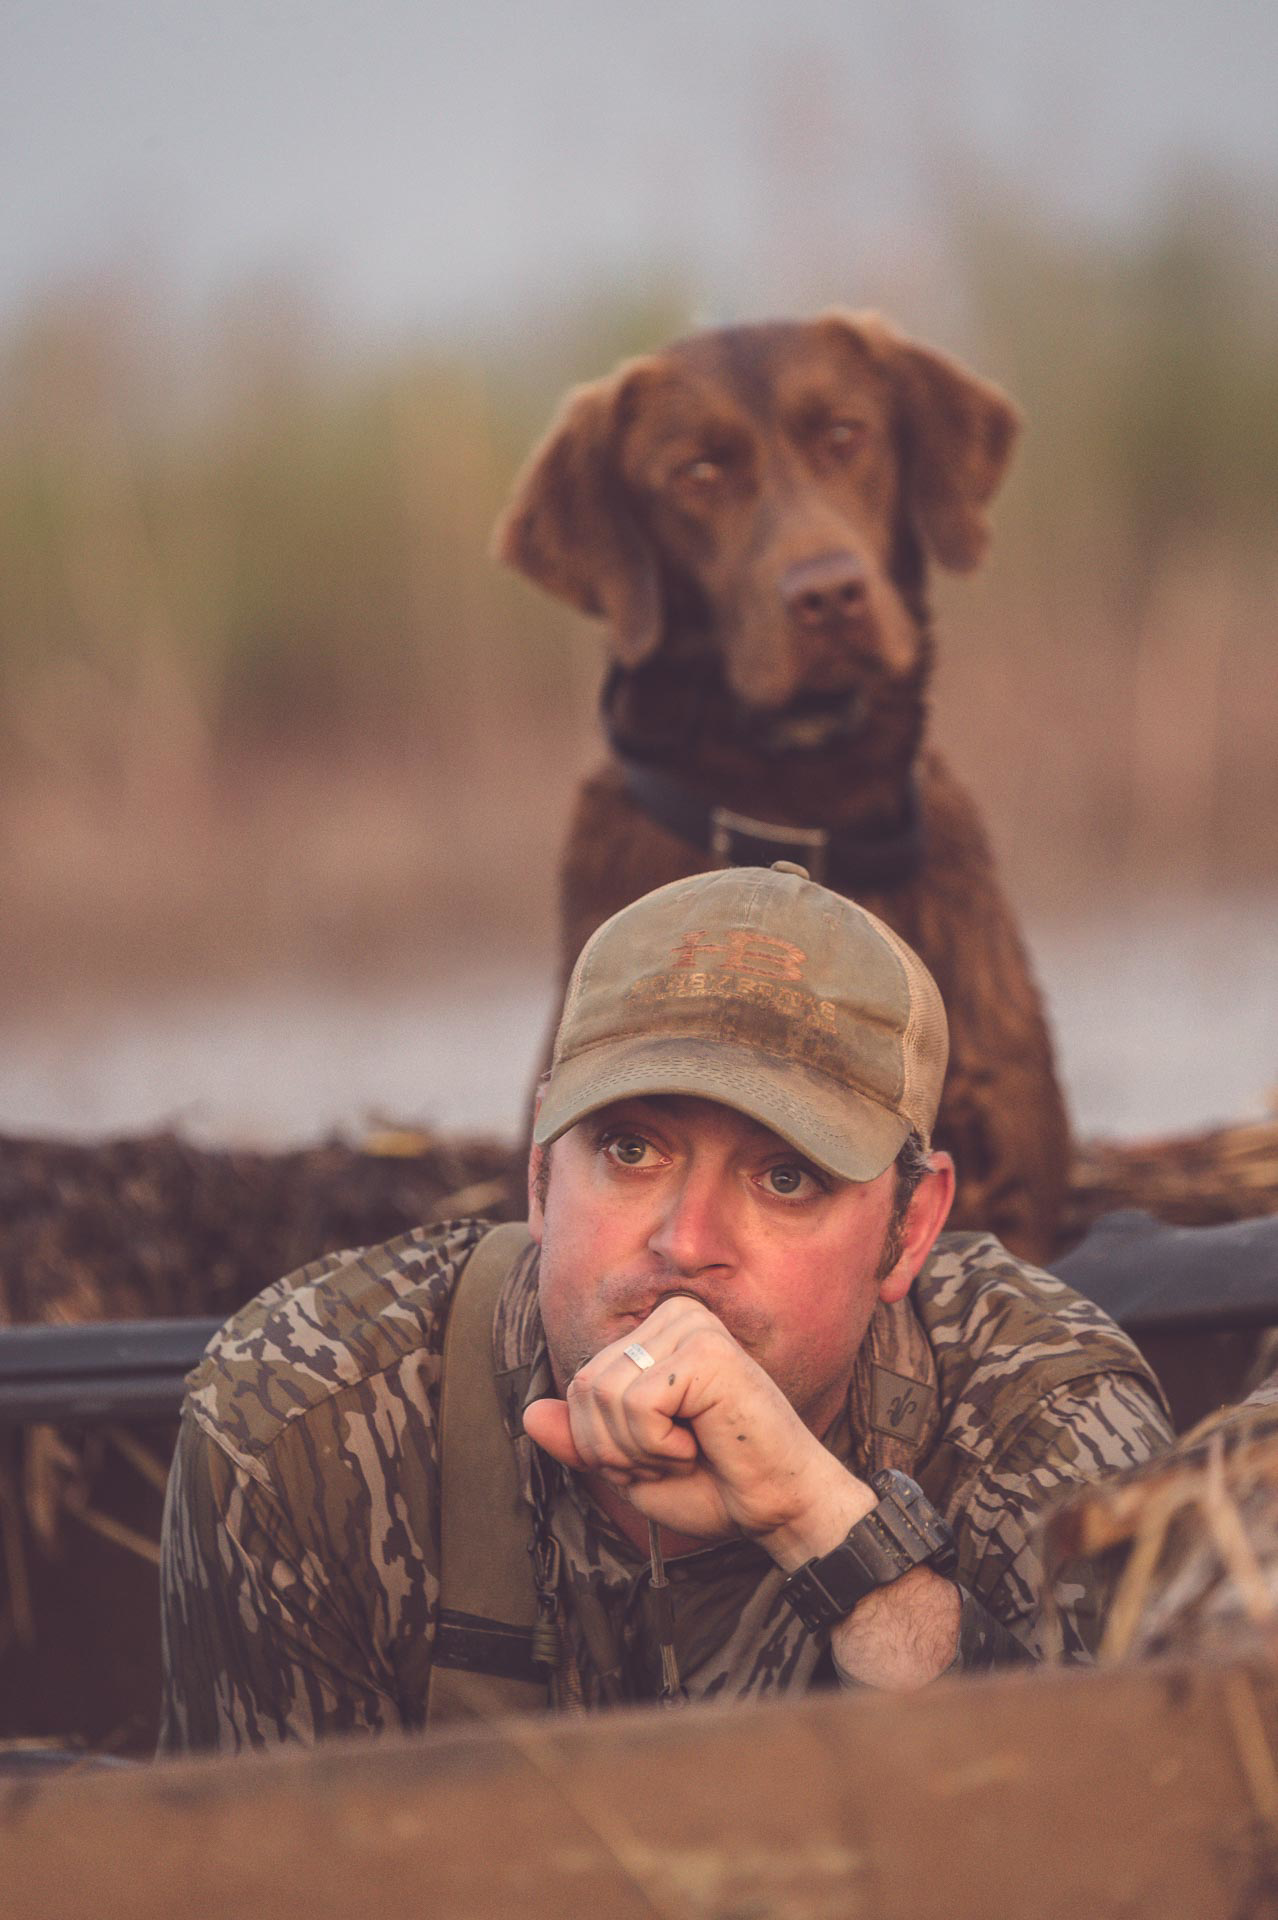 Duck hunting guide, Richard, calling ducks while his lab watches. © Tony Bynum